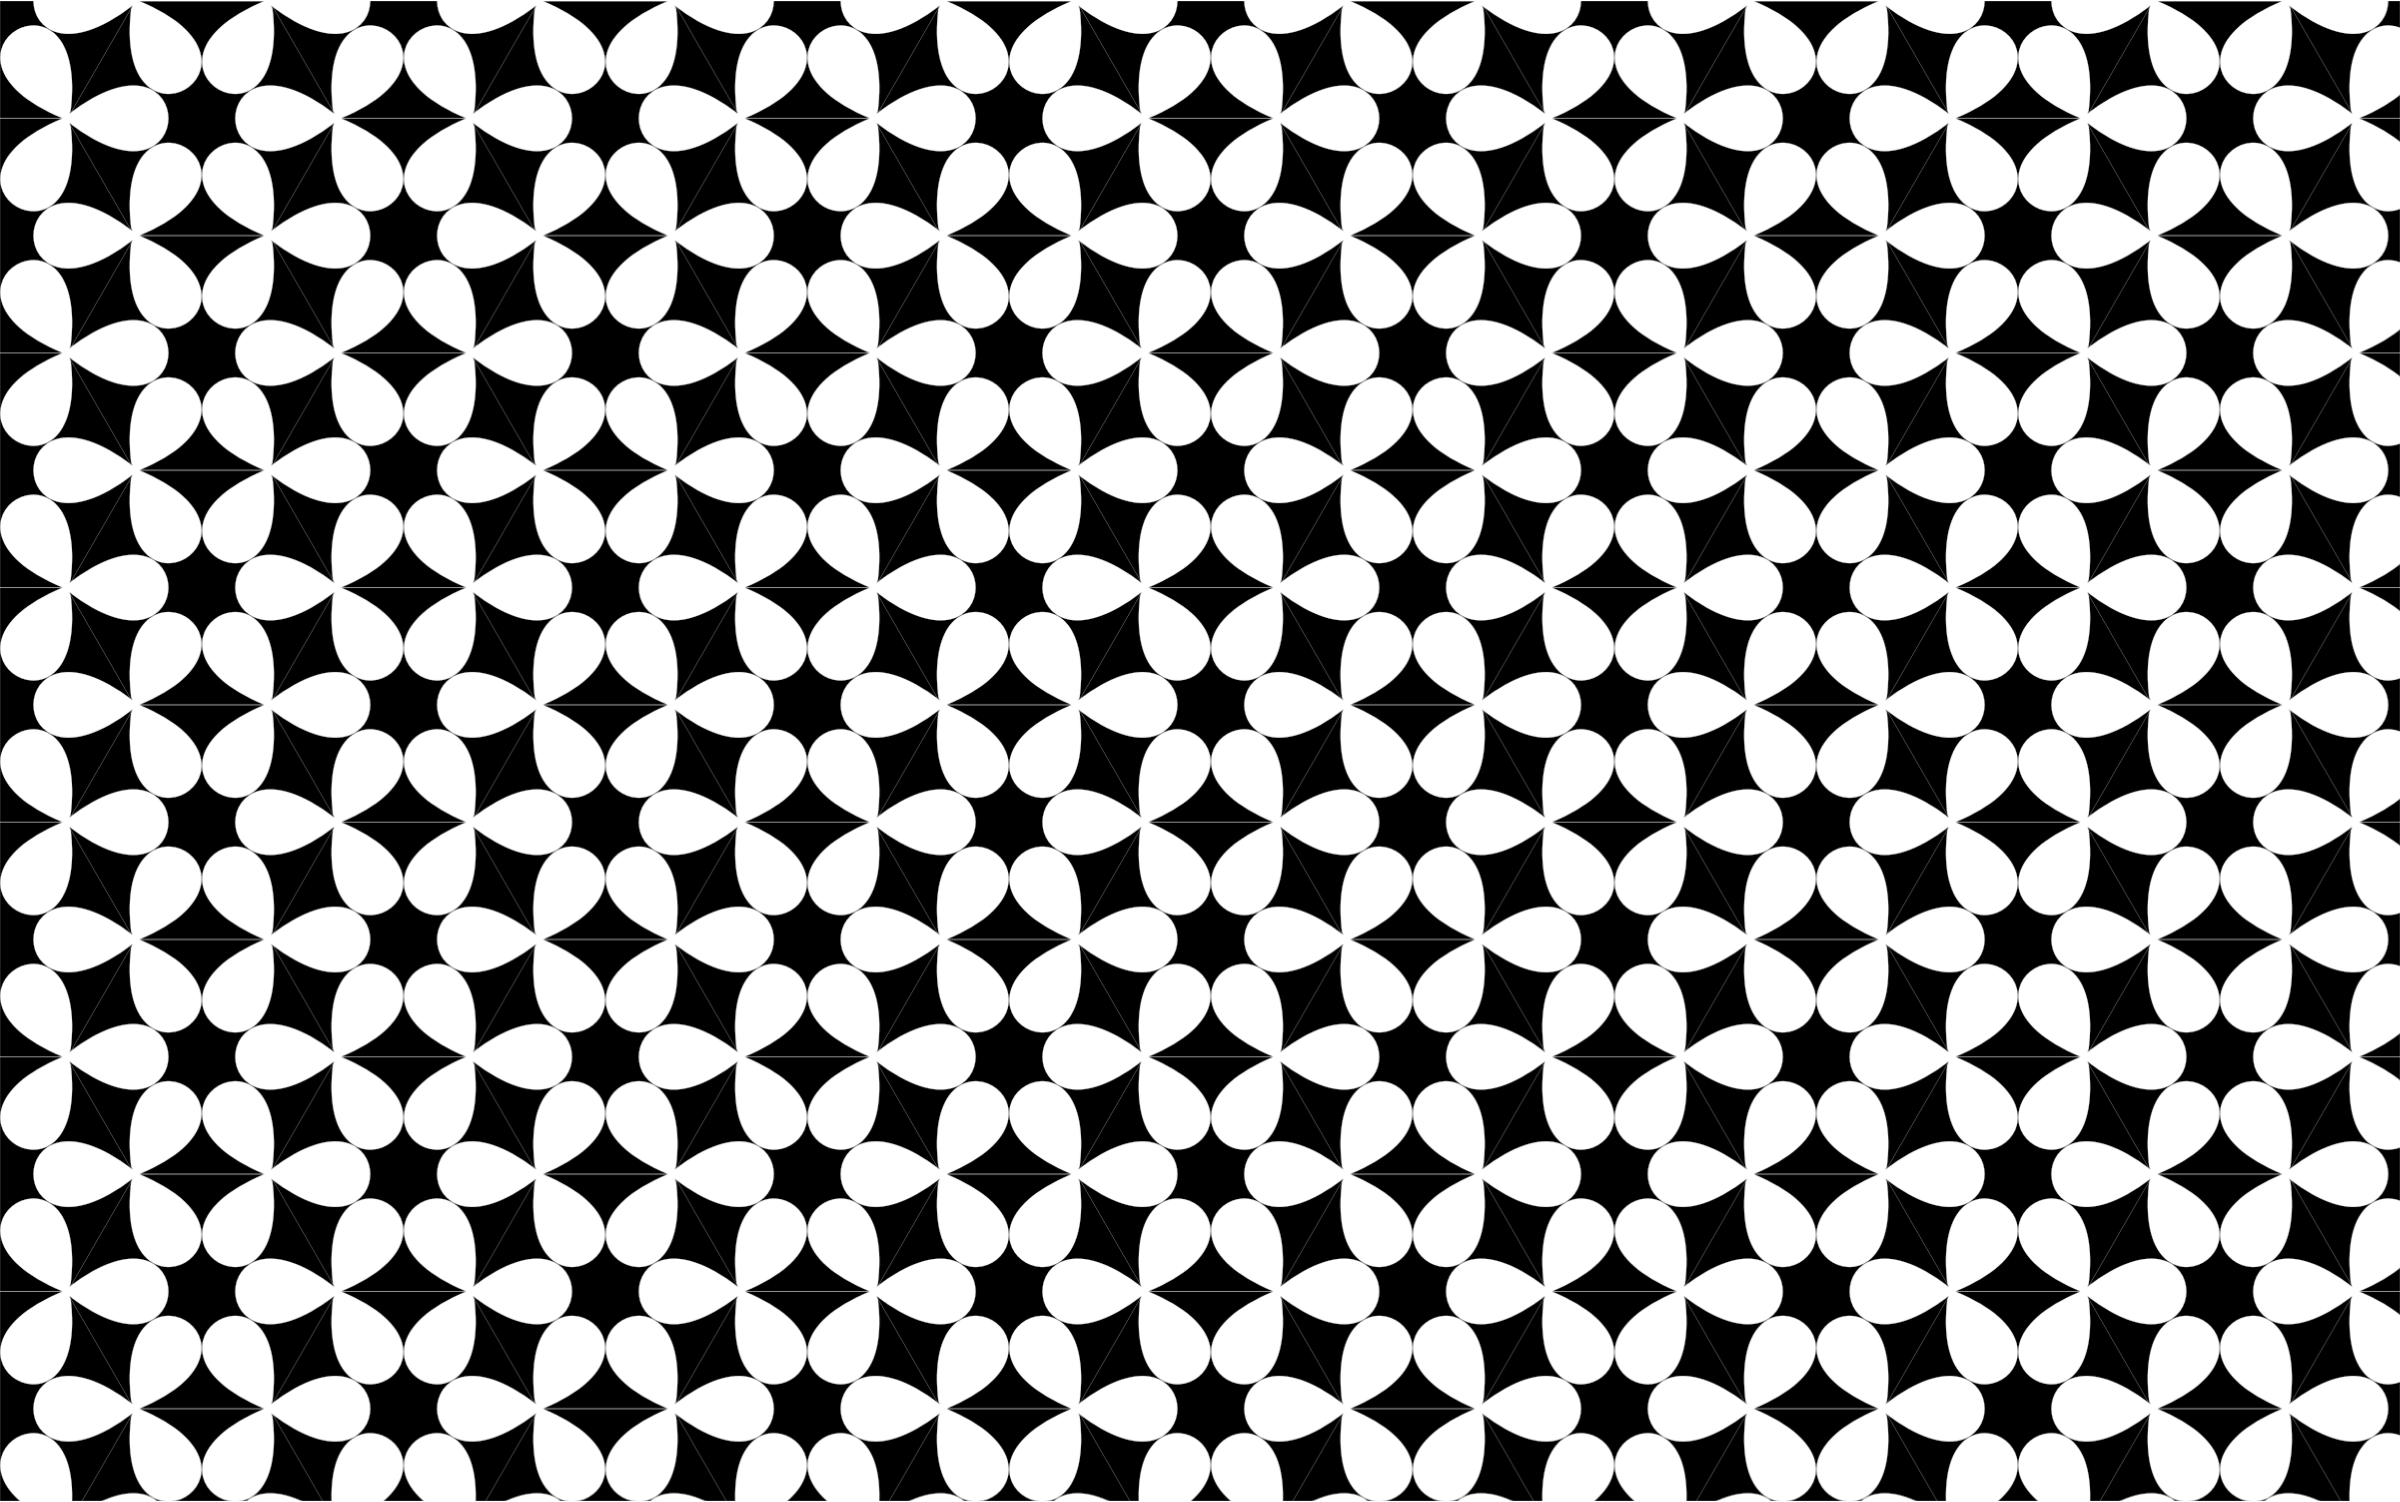 Seamless Monochrome Floral Pattern 2 by GDJ